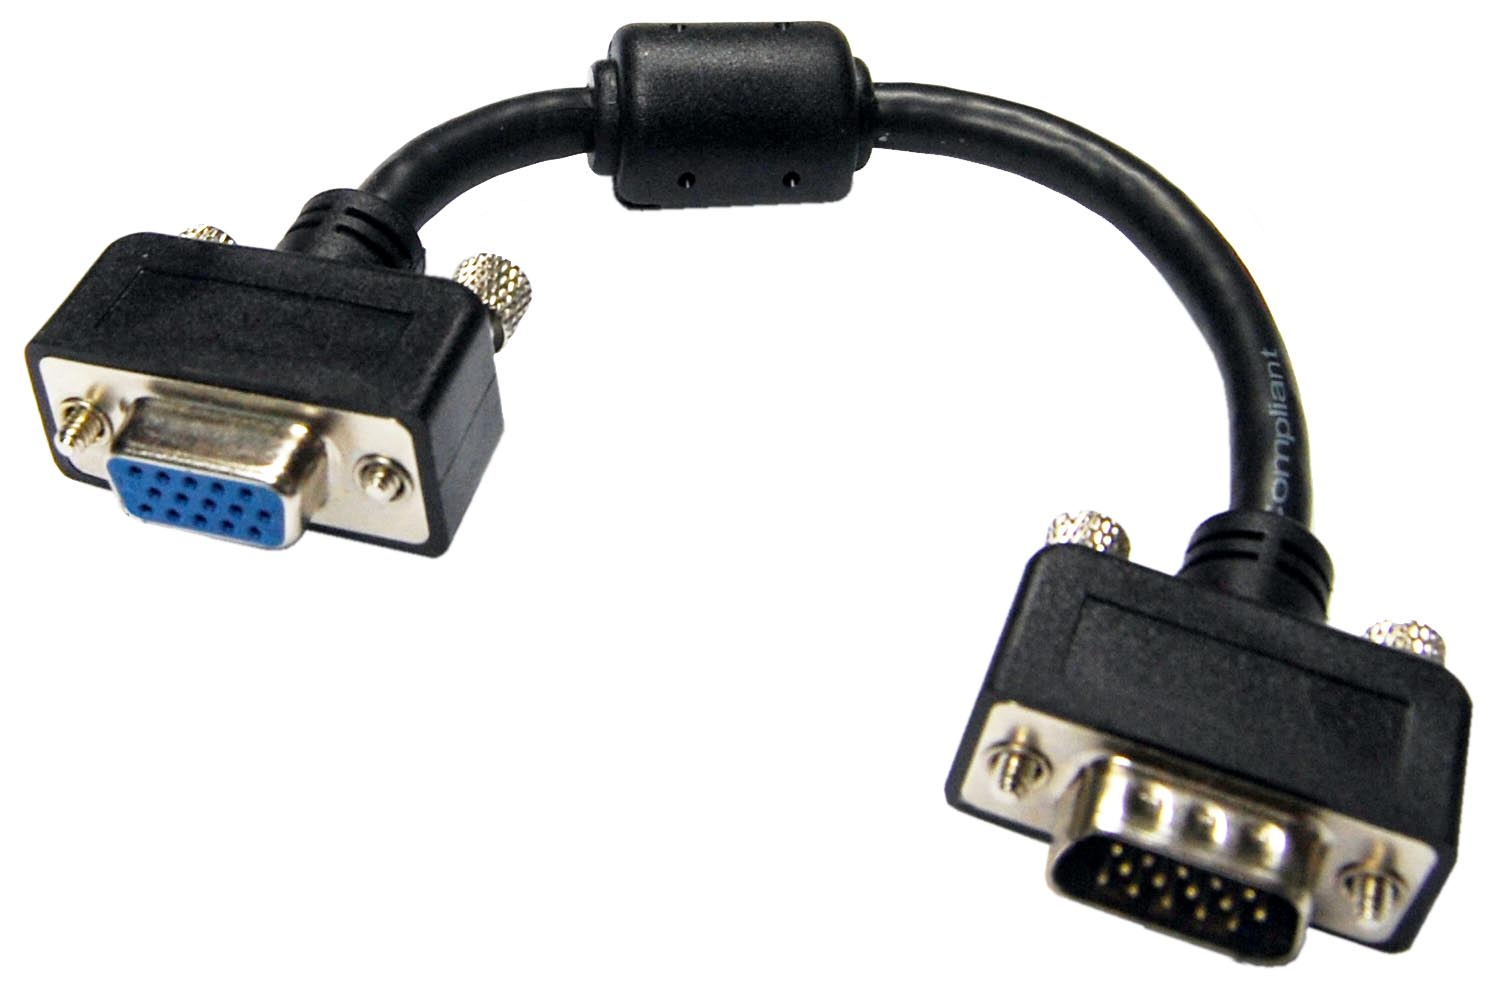 Dynamix 180mm Slimline VGA Male to Female Pigtail